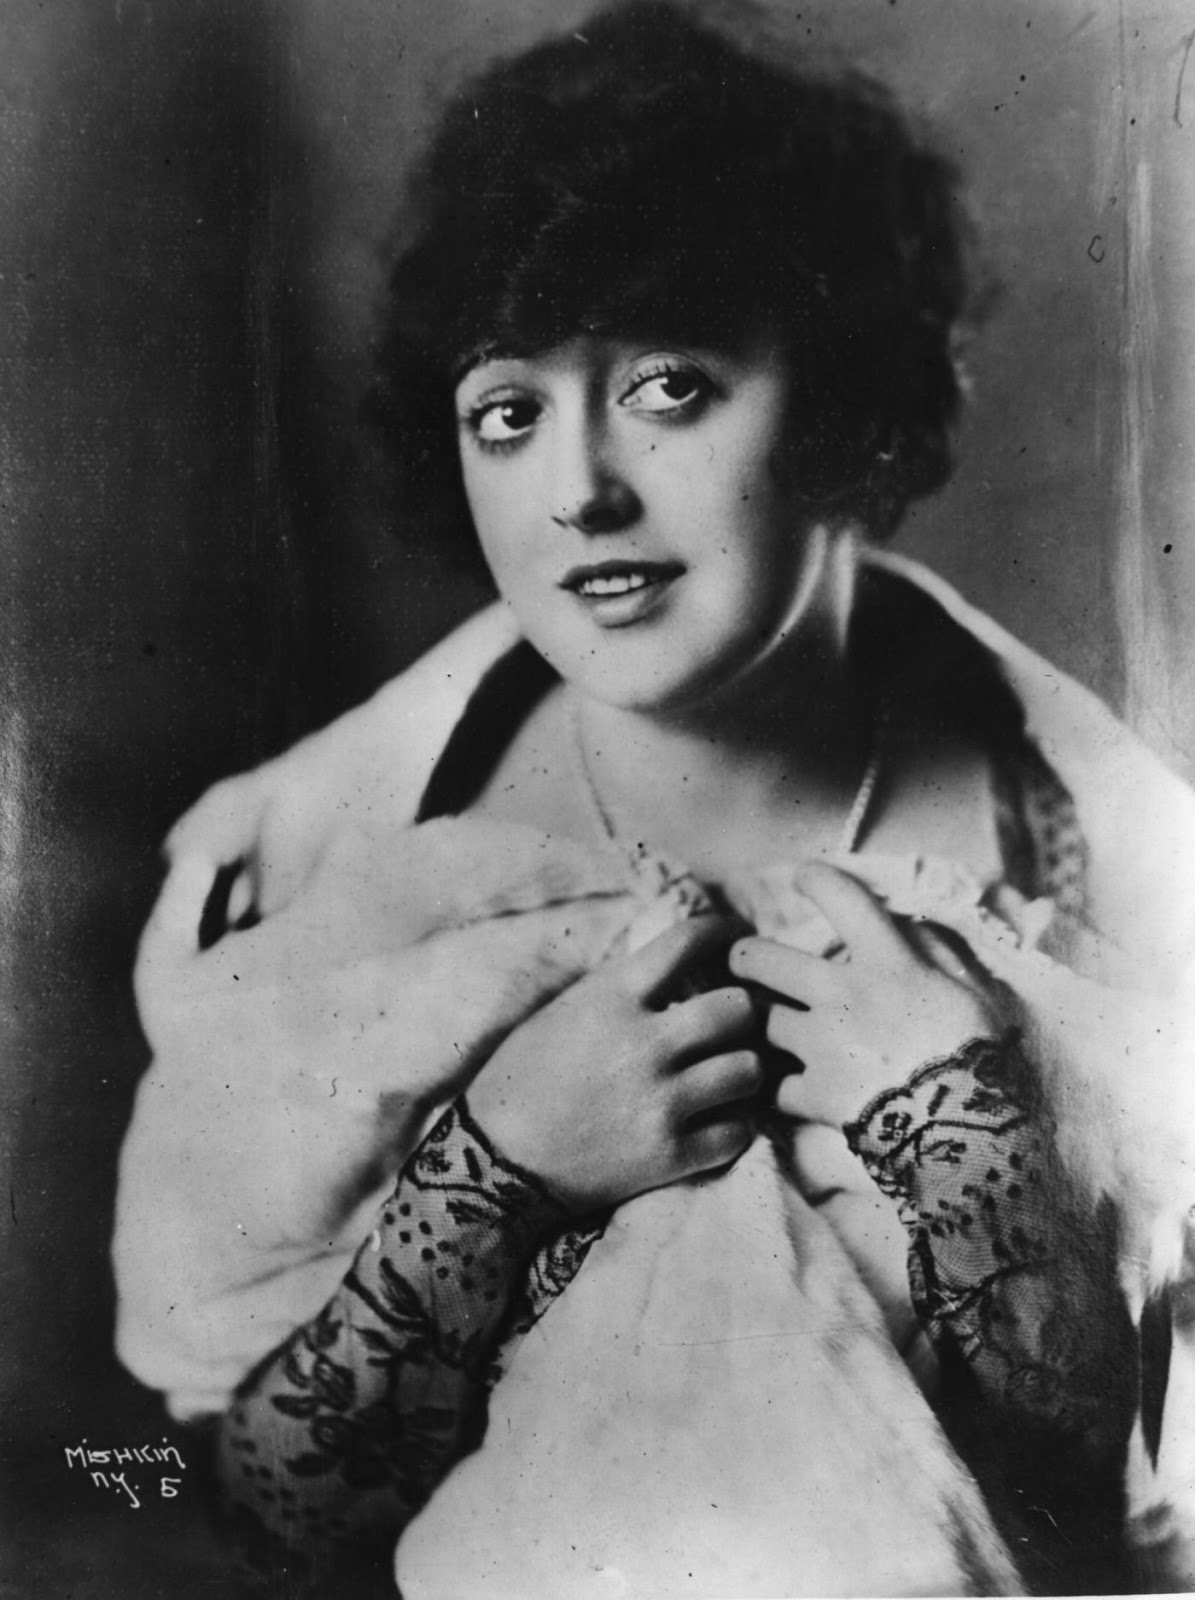 Mabel Normand nudes (92 photos), Tits, Fappening, Feet, bra 2020